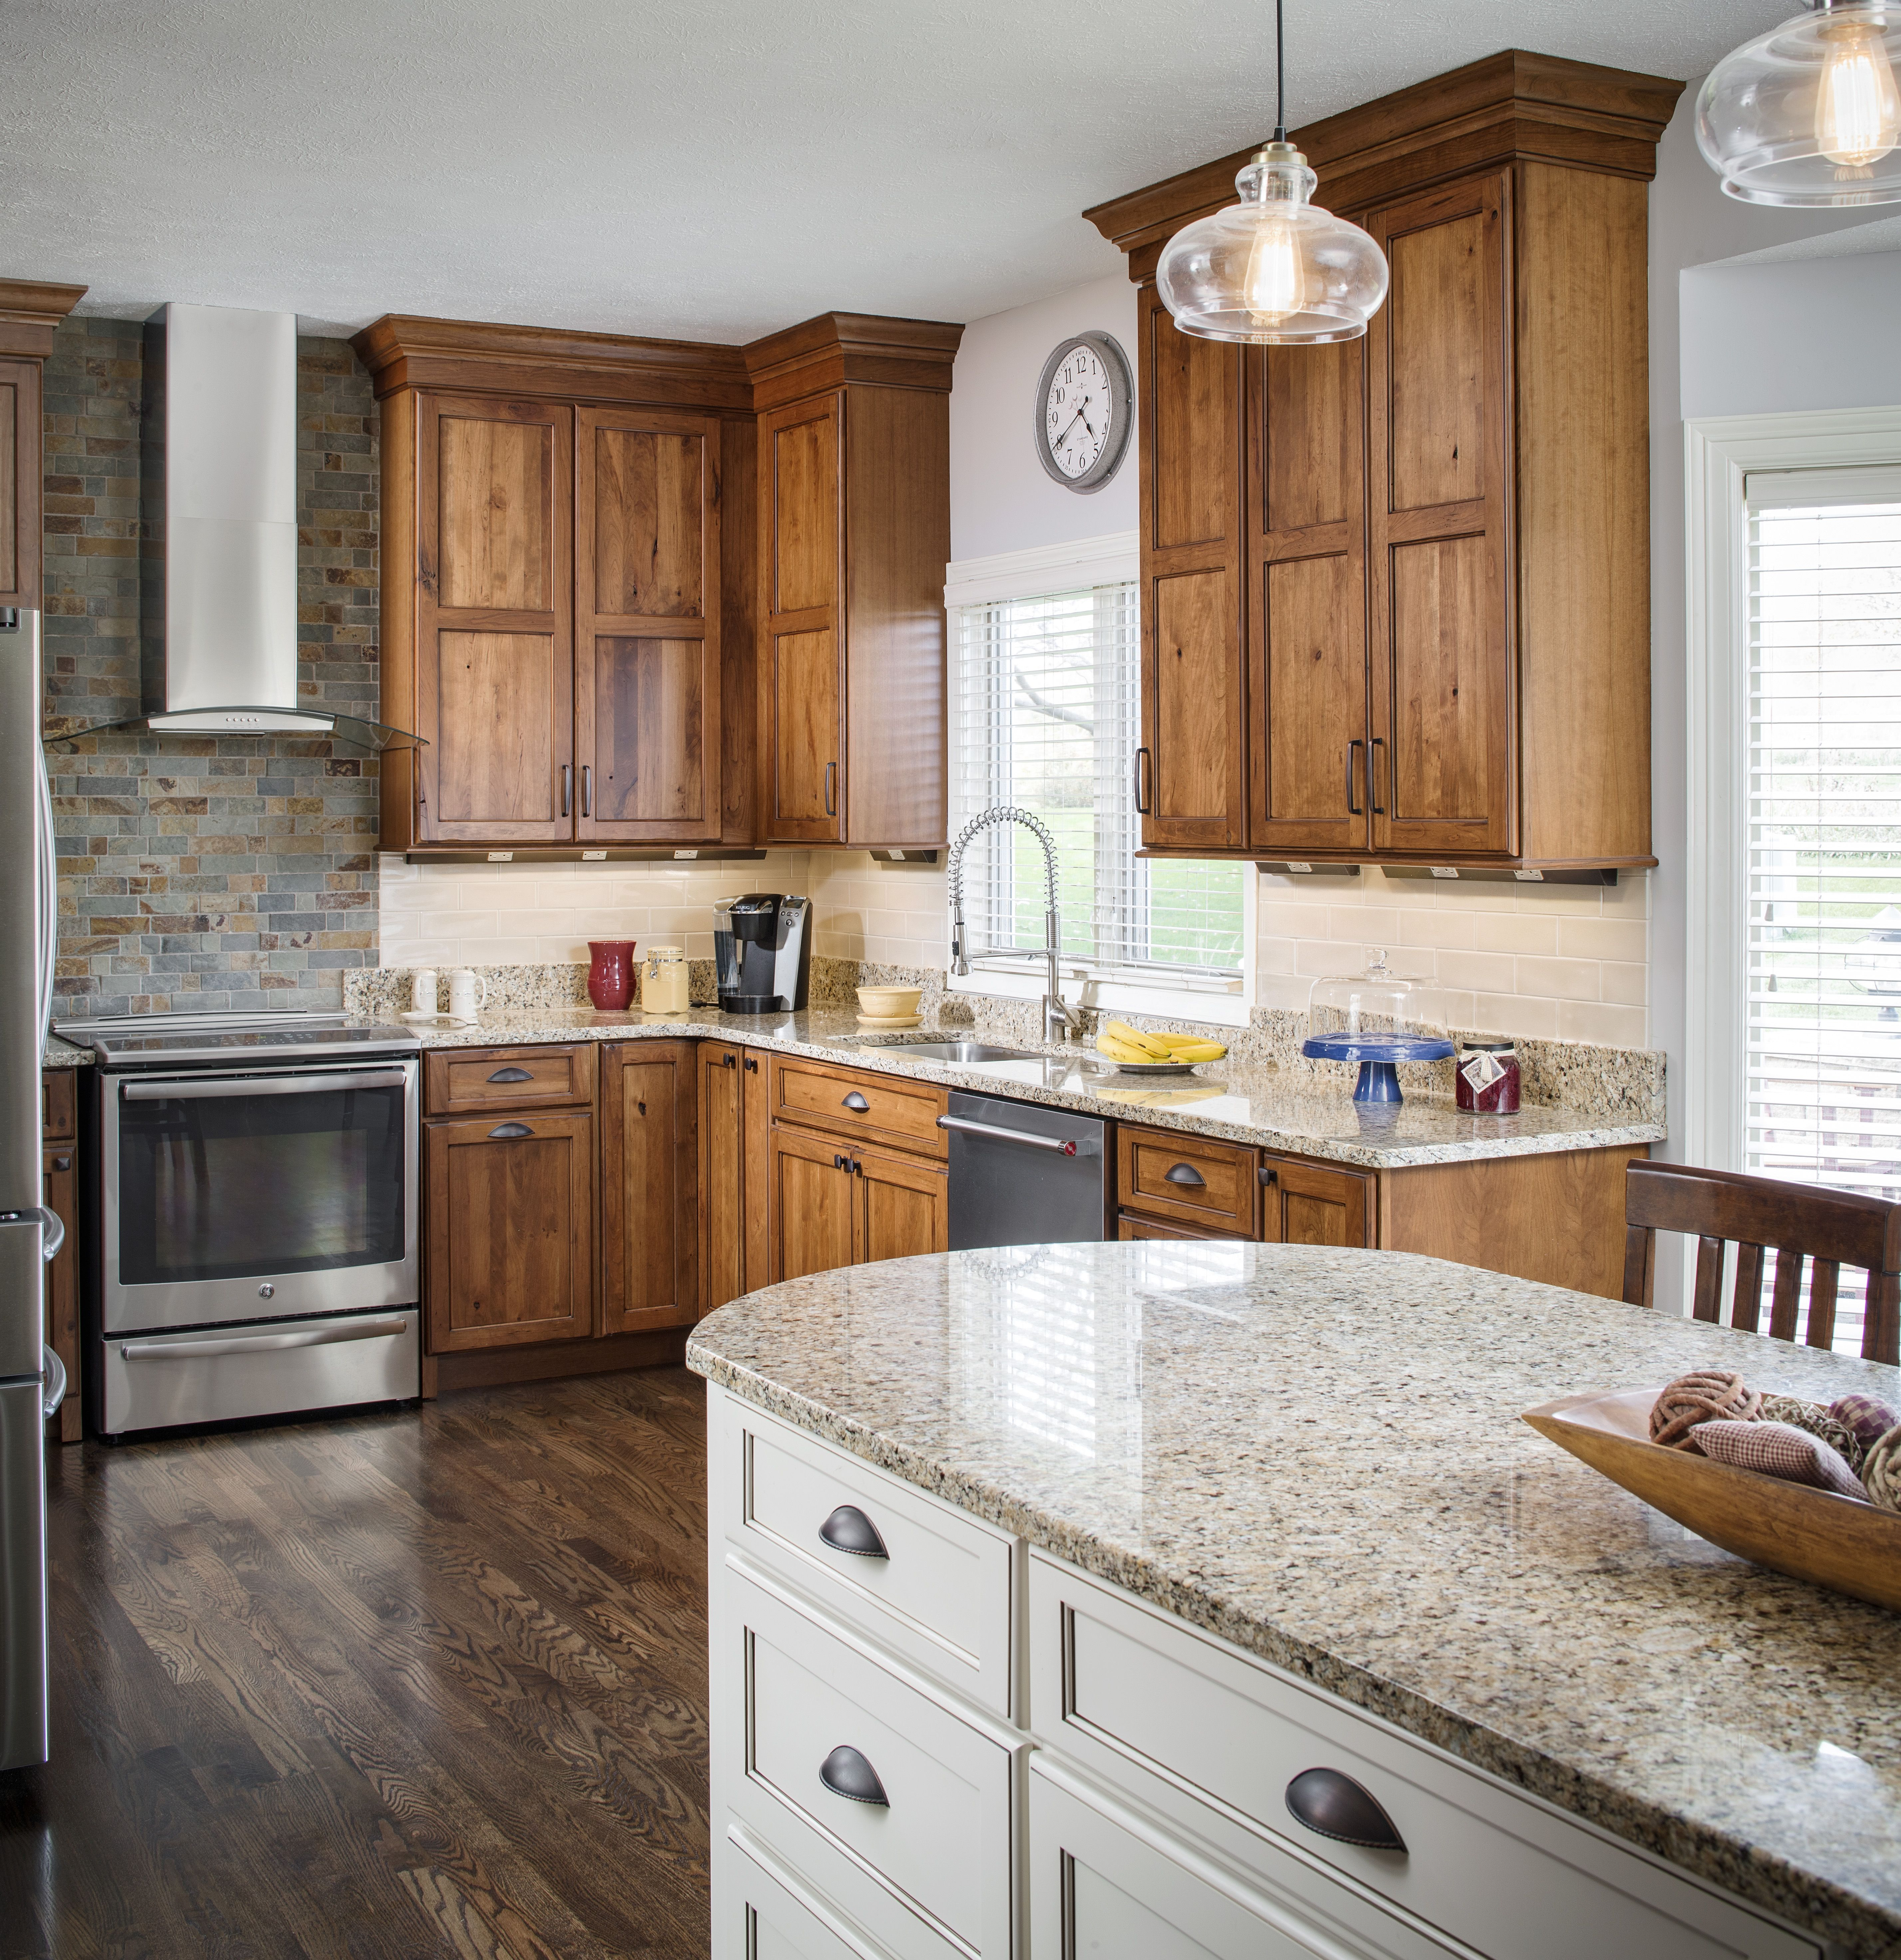 Contrasting Island And Kitchen Cabinets That Go All The Way To The Ceiling Kitchen Cabinets Quality Kitchen Cabinets Kitchen Cabinets And Countertops